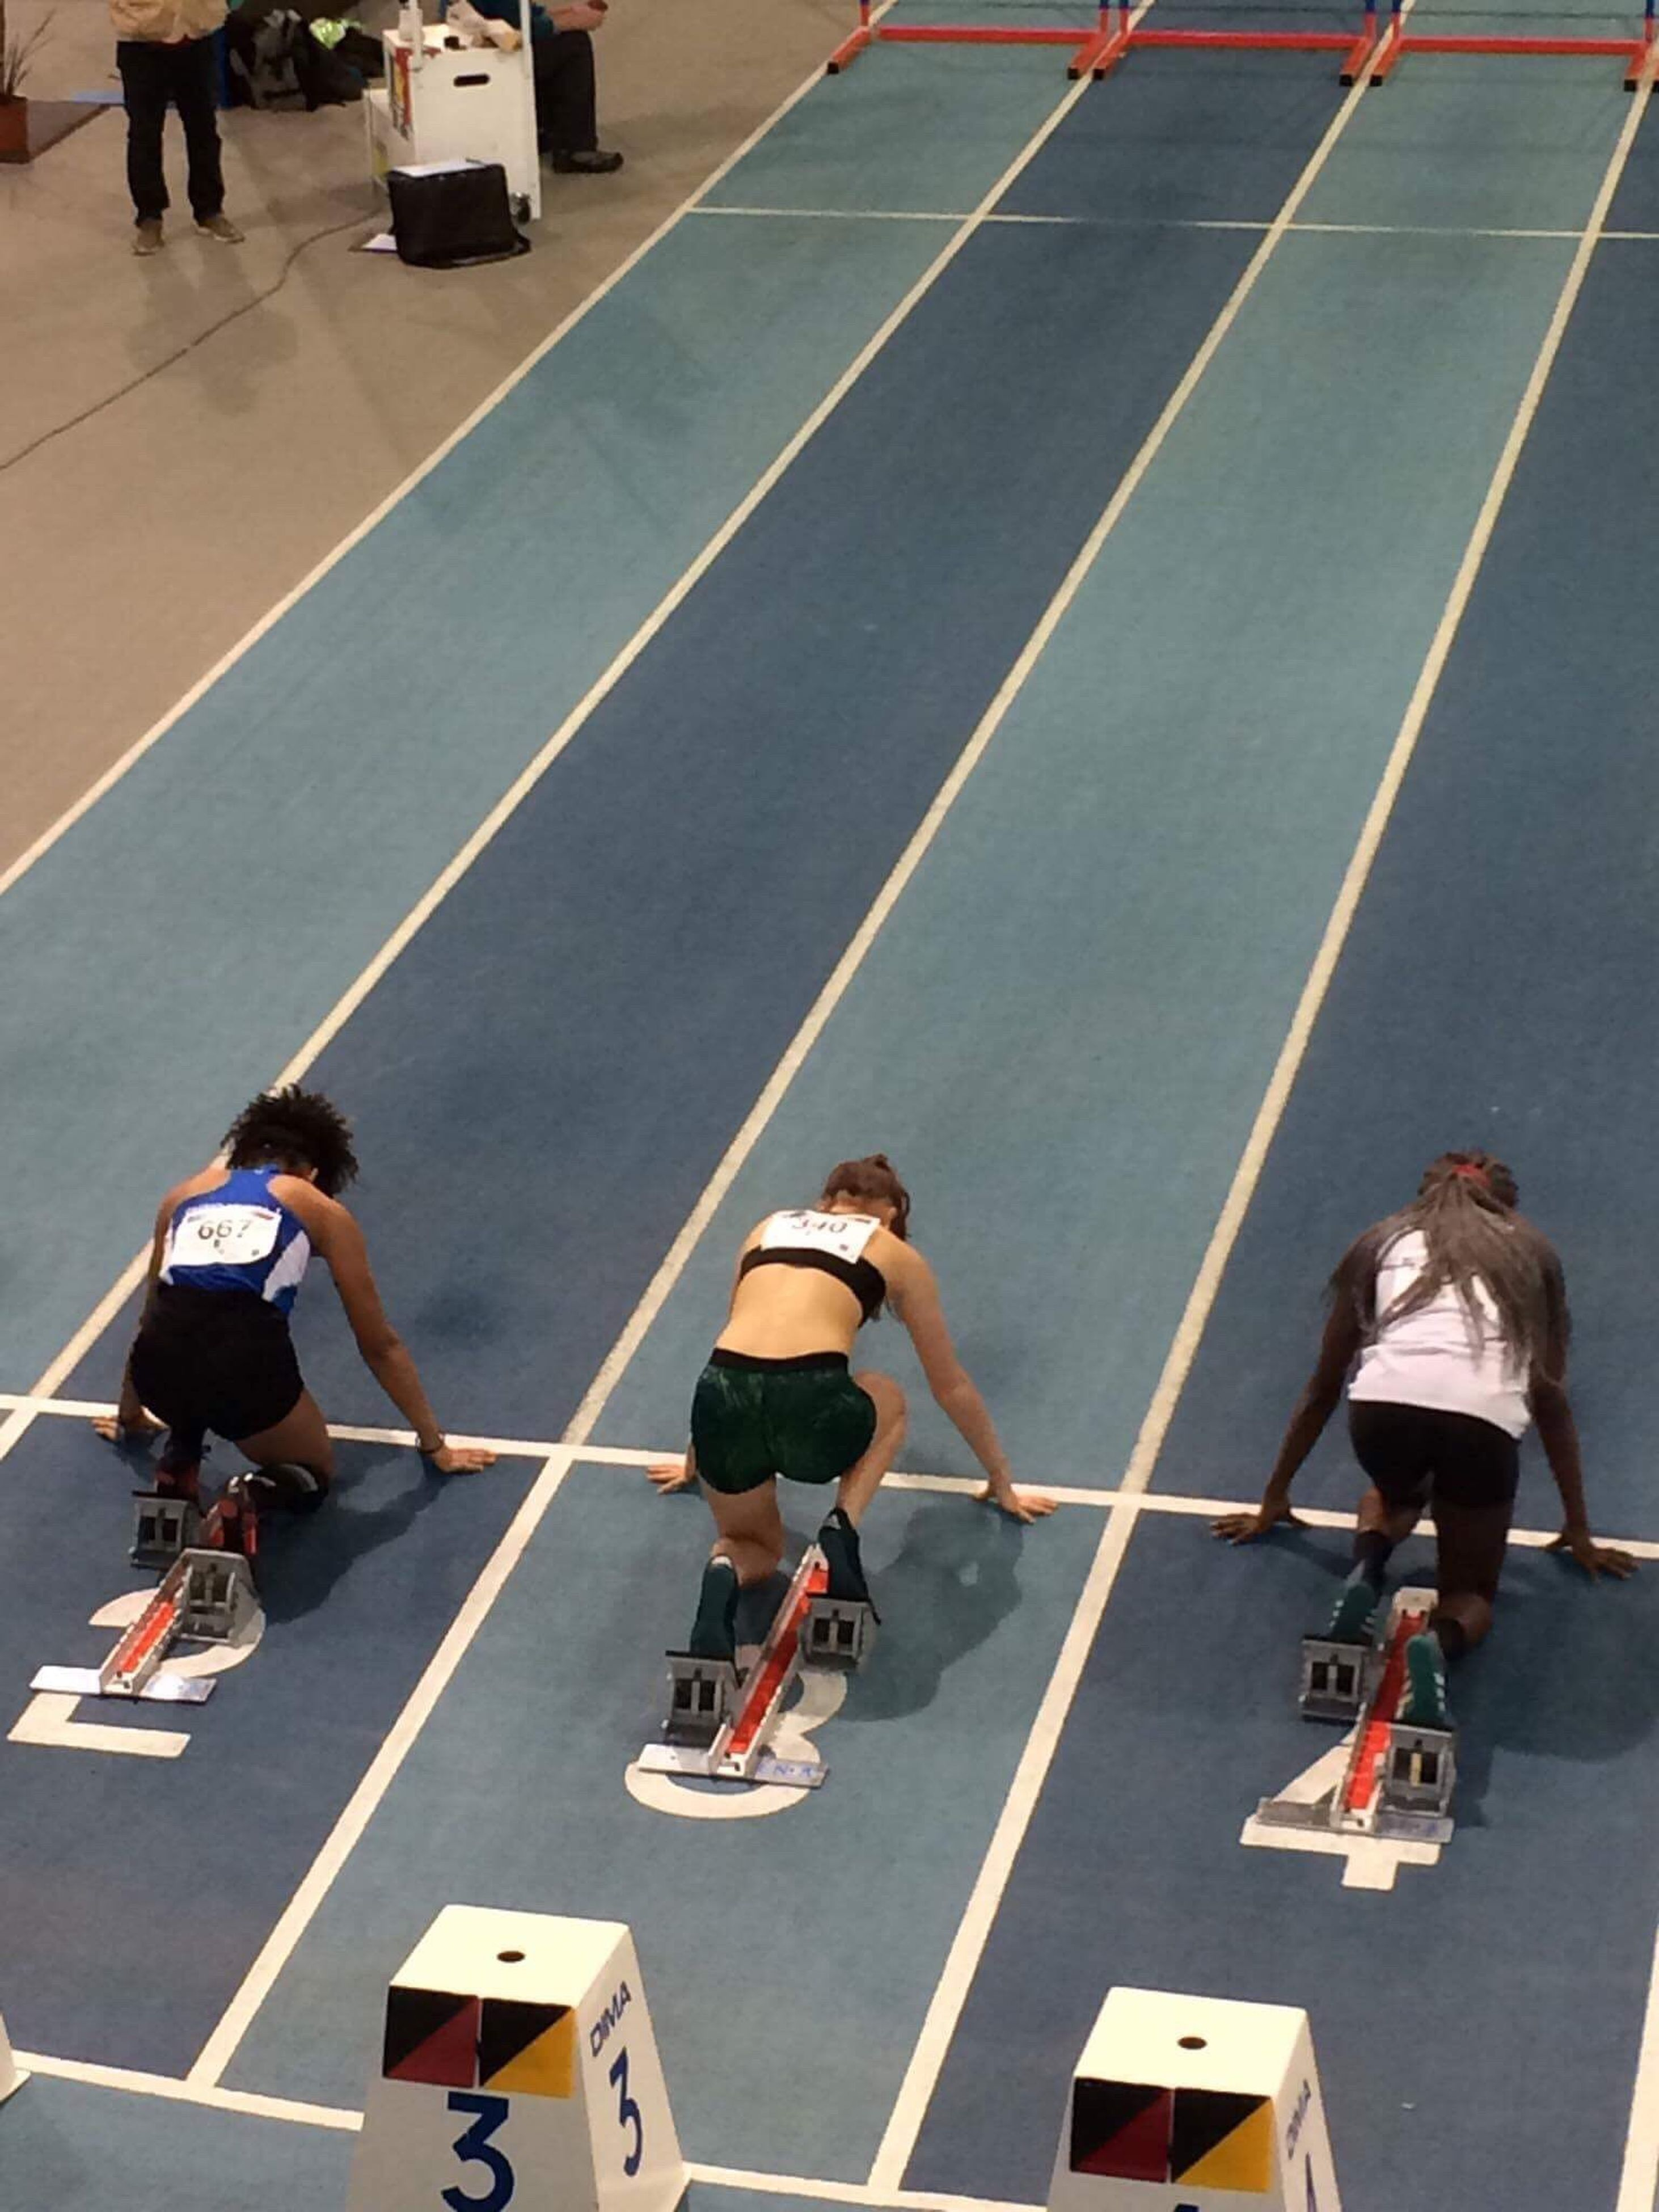 high angle view, adults only, men, adult, real people, competitive sport, women, people, sportsman, competition, only men, outdoors, physical impairment, young adult, sports race, sports track, day, athlete, track and field, sports uniform, track and field athlete